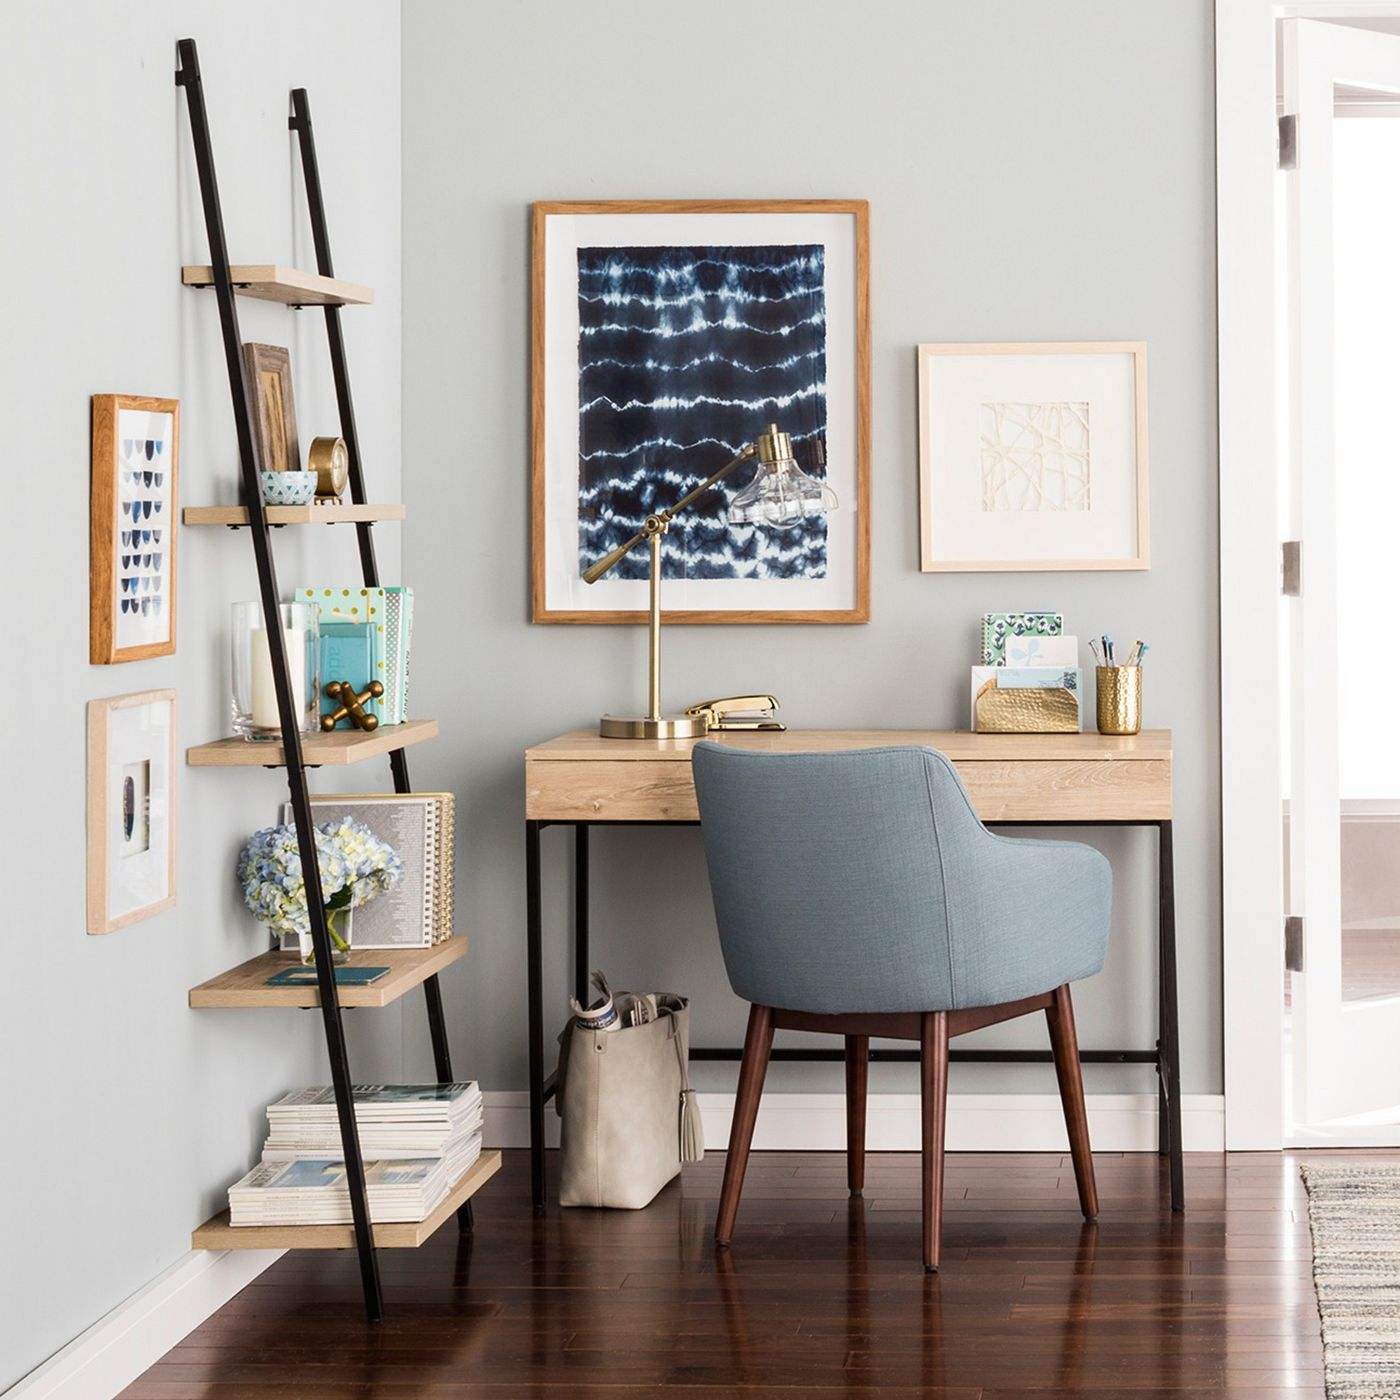 Loring Writing Table in office